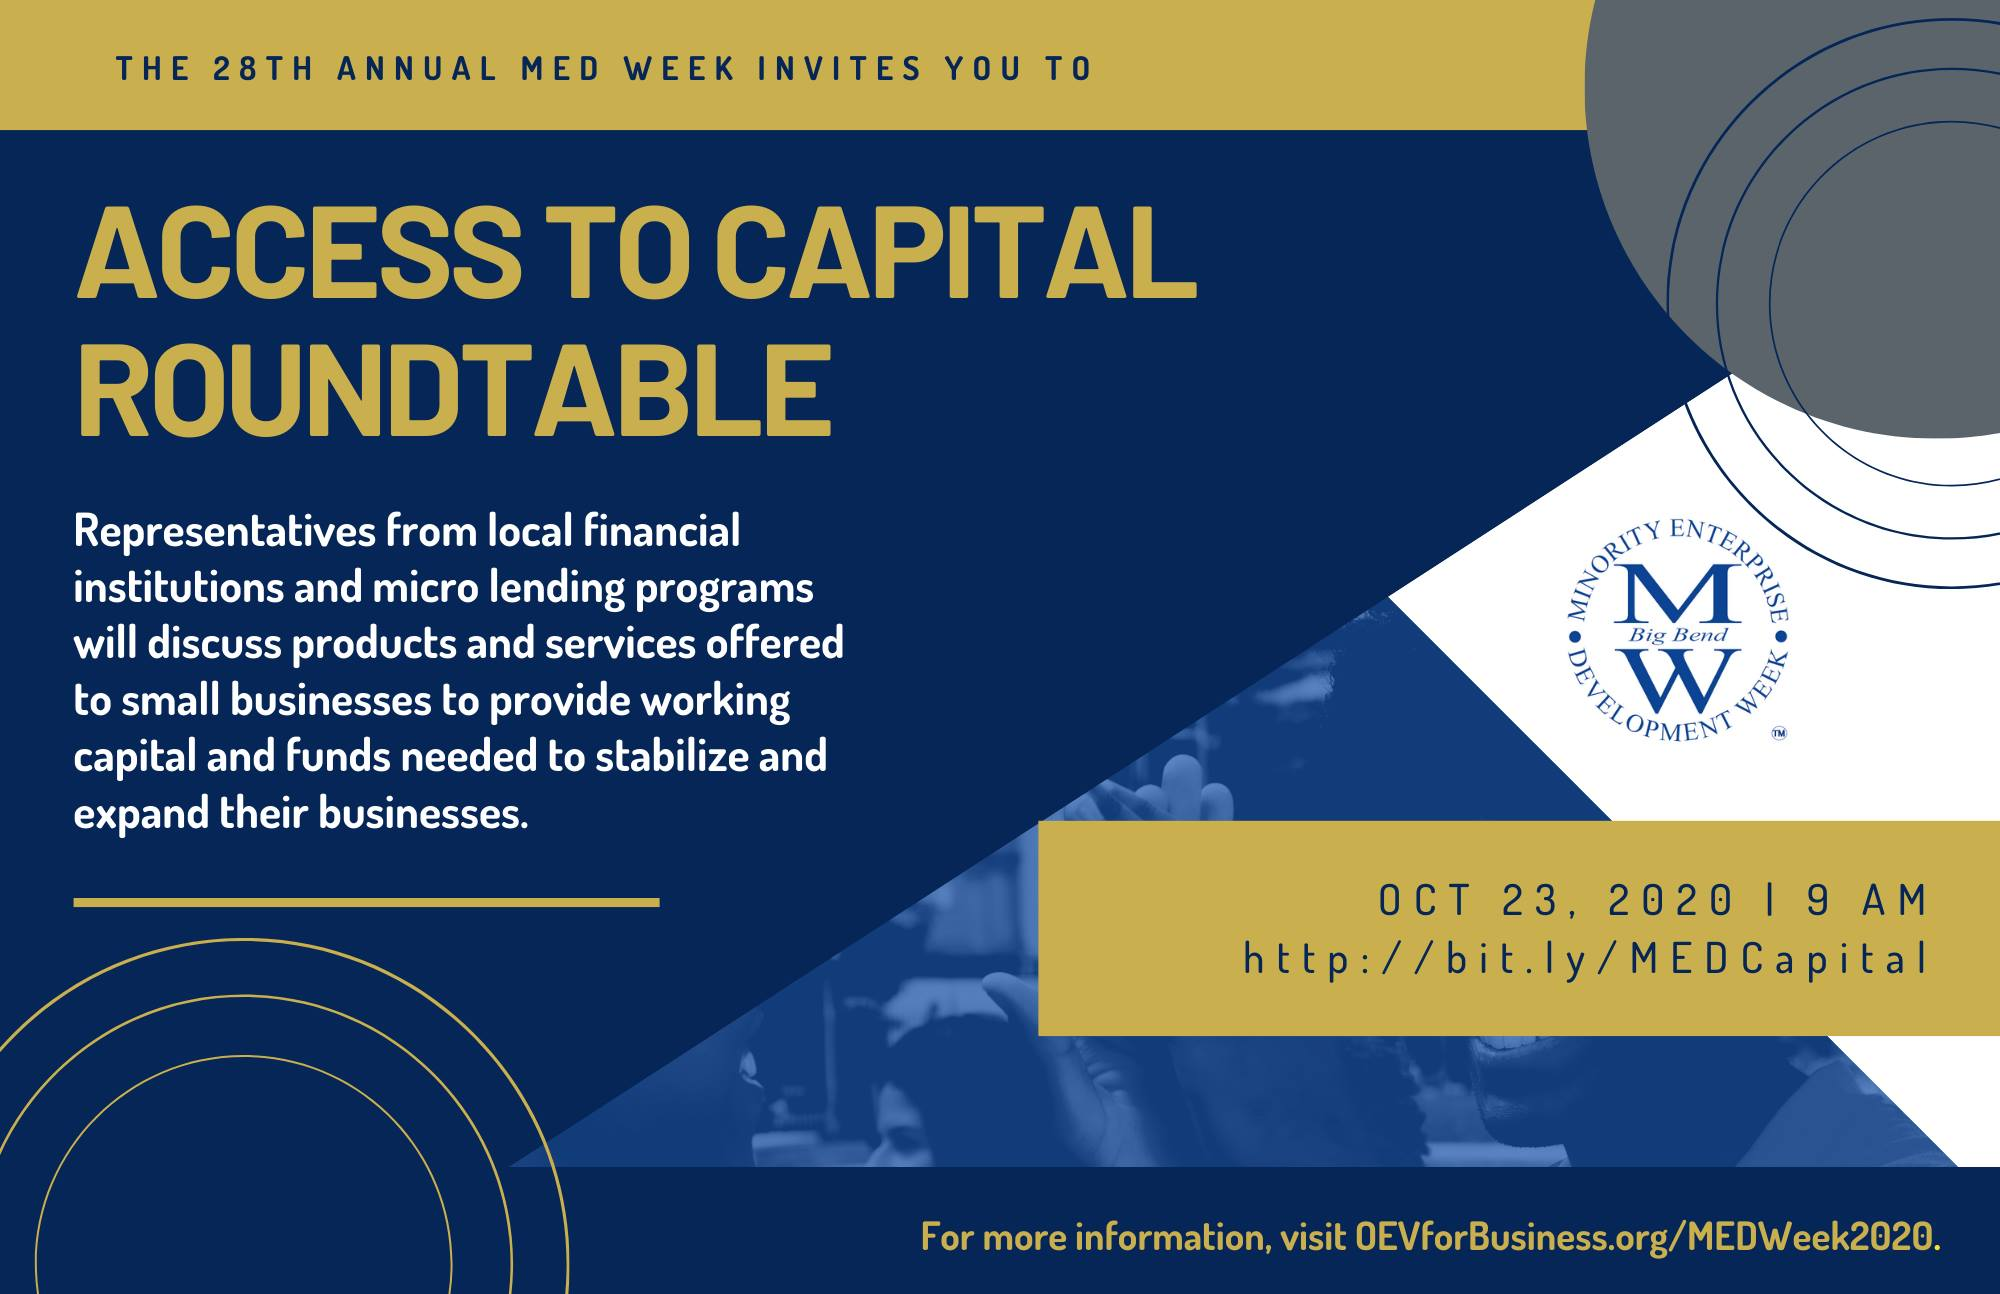 Access to Capital Roundtable